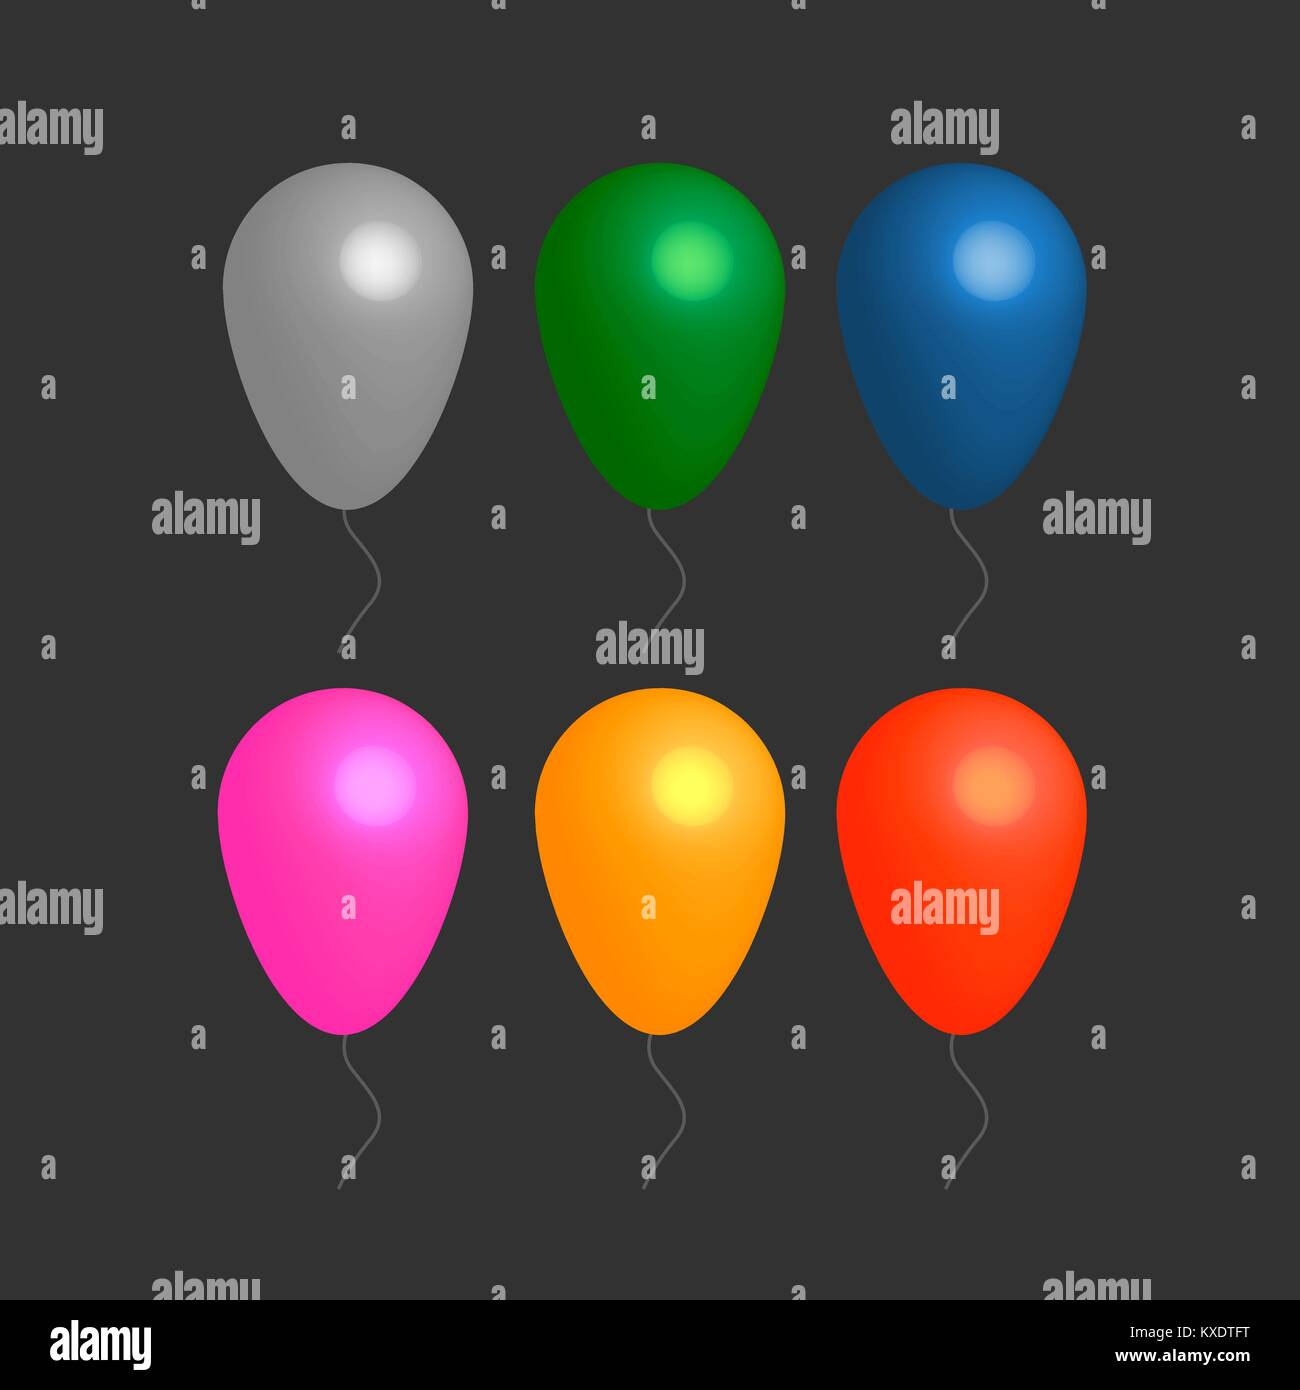 Colorful realistic helium balloons - Stock Image